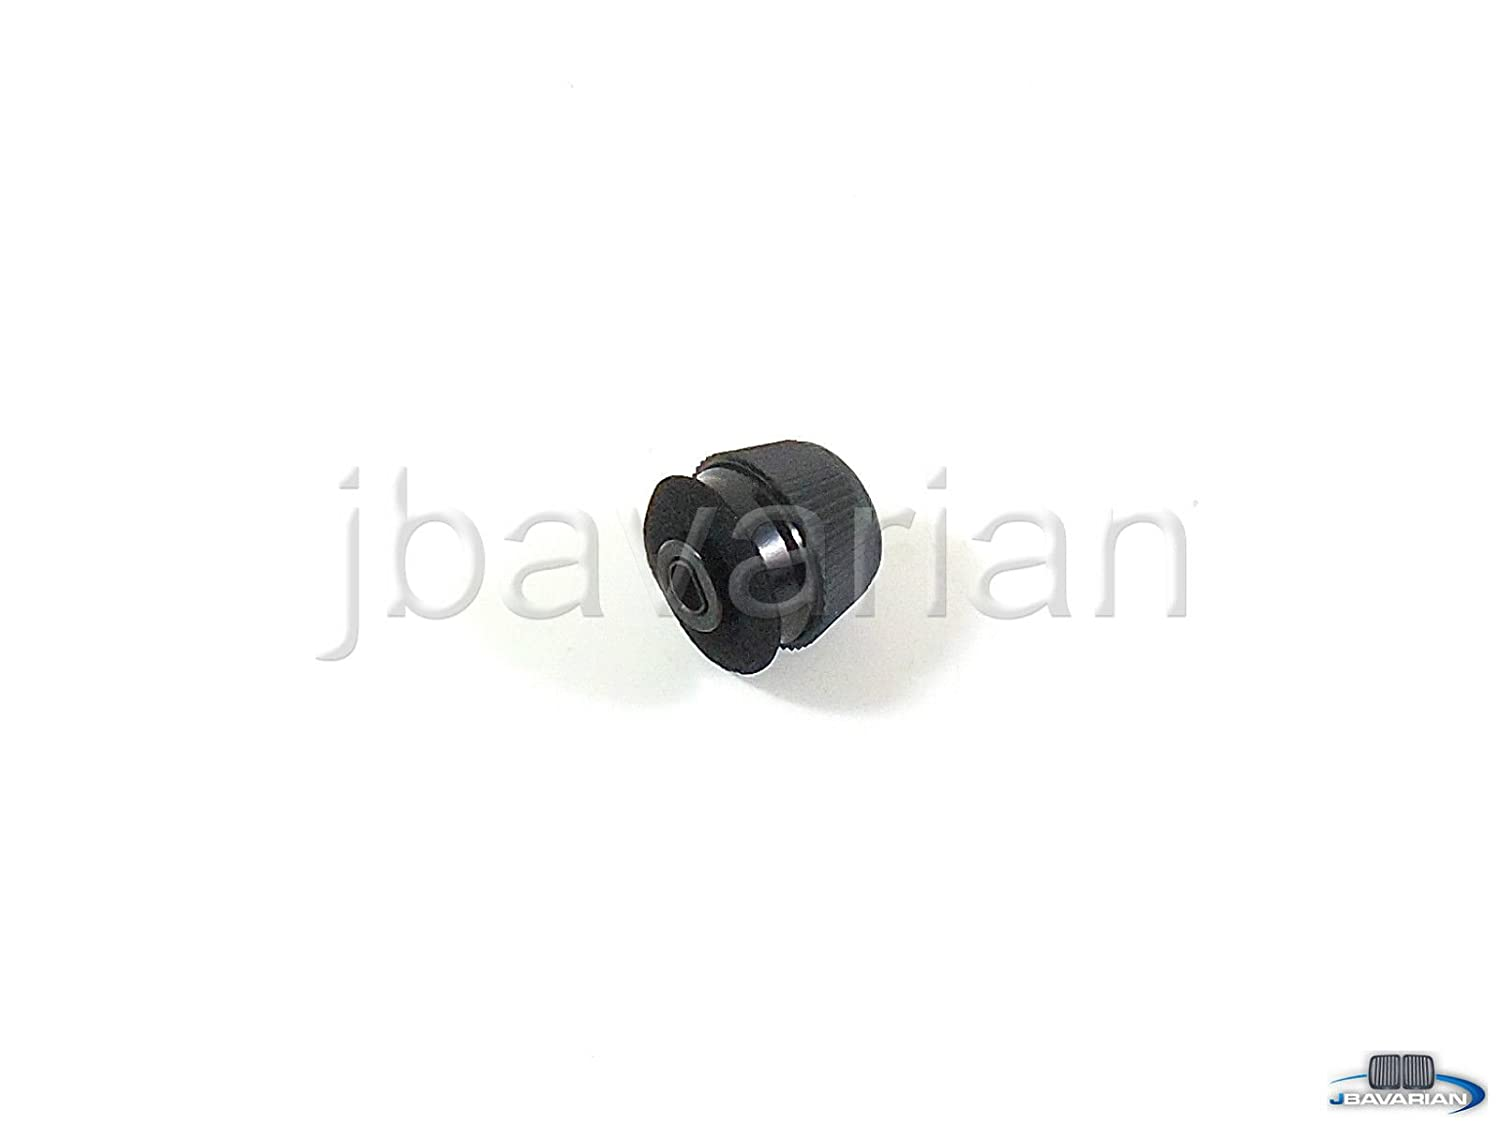 Genuine Navigation Dial Rotary Knob for OBC BMW 5 7 Series E38 E39 X5 E53 2000- 65 52 8 385 458